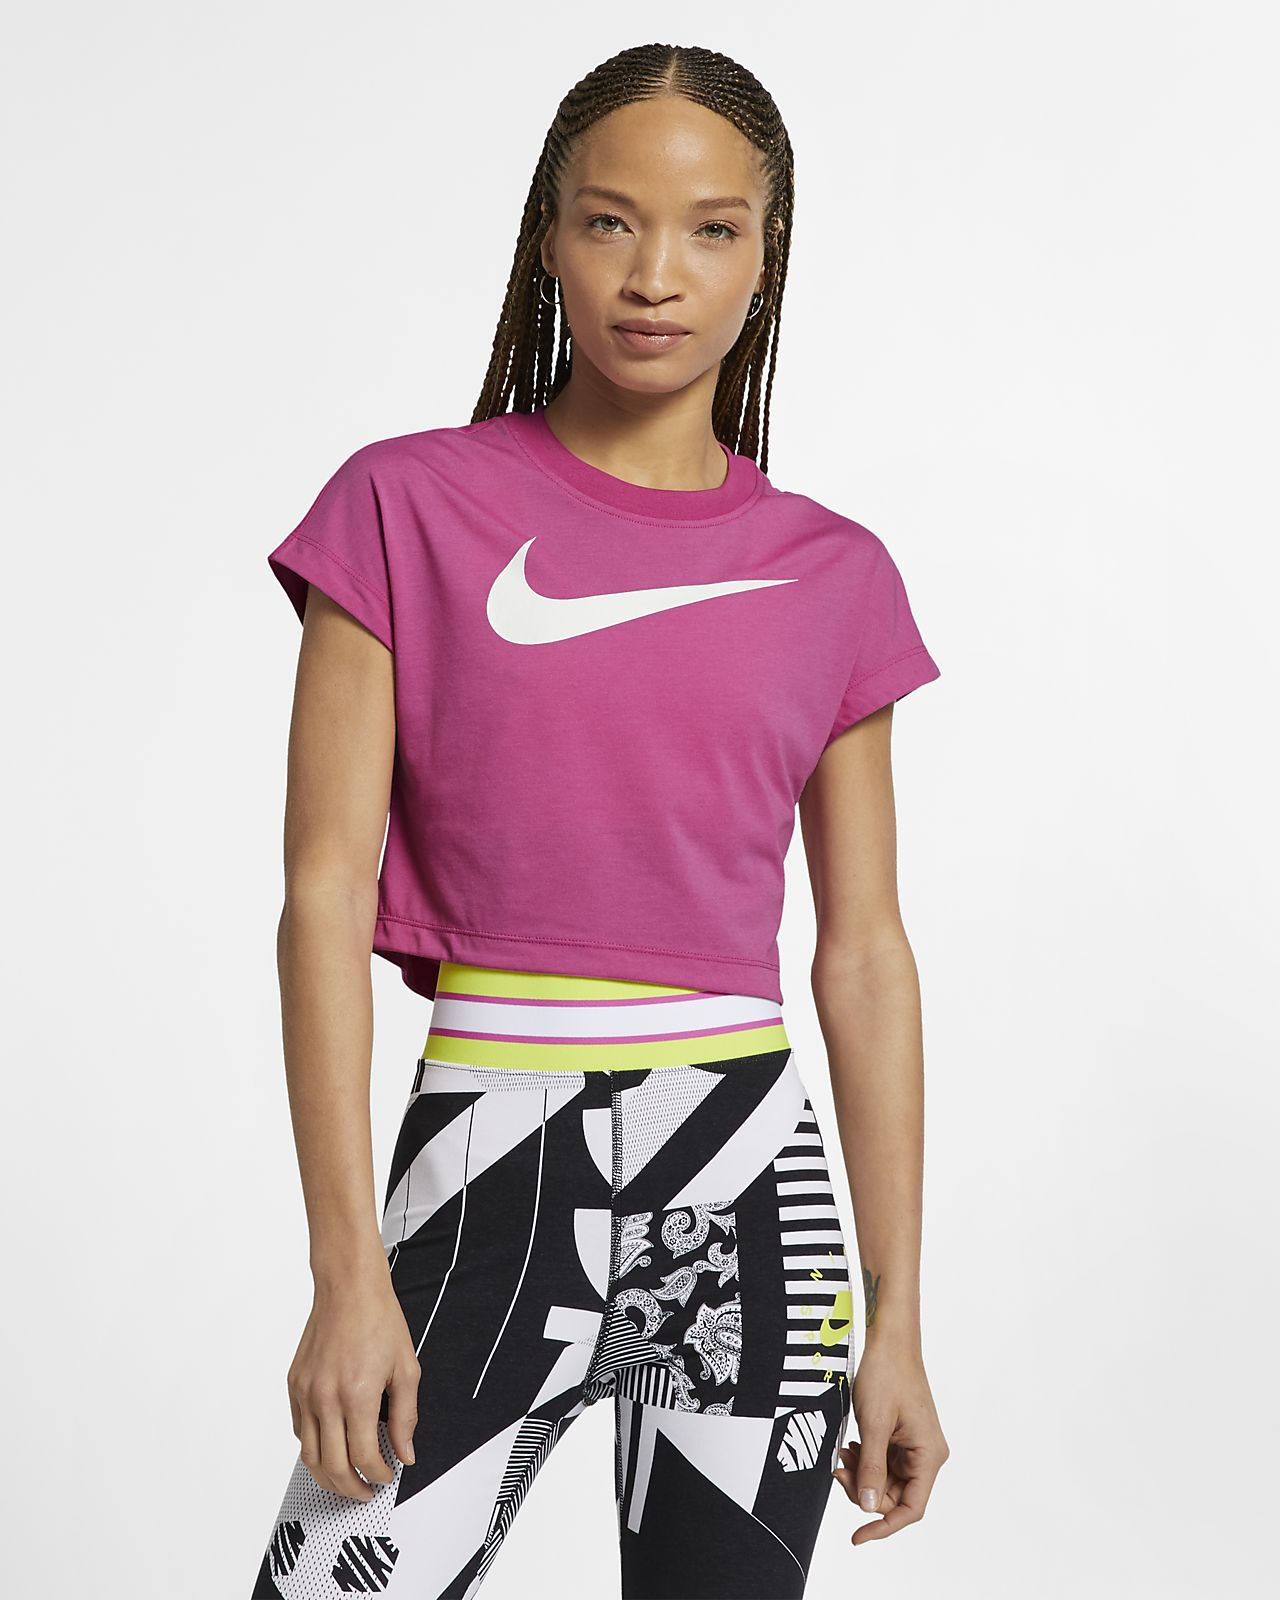 Nike Sportswear Women's Swoosh Short-Sleeve Crop Top